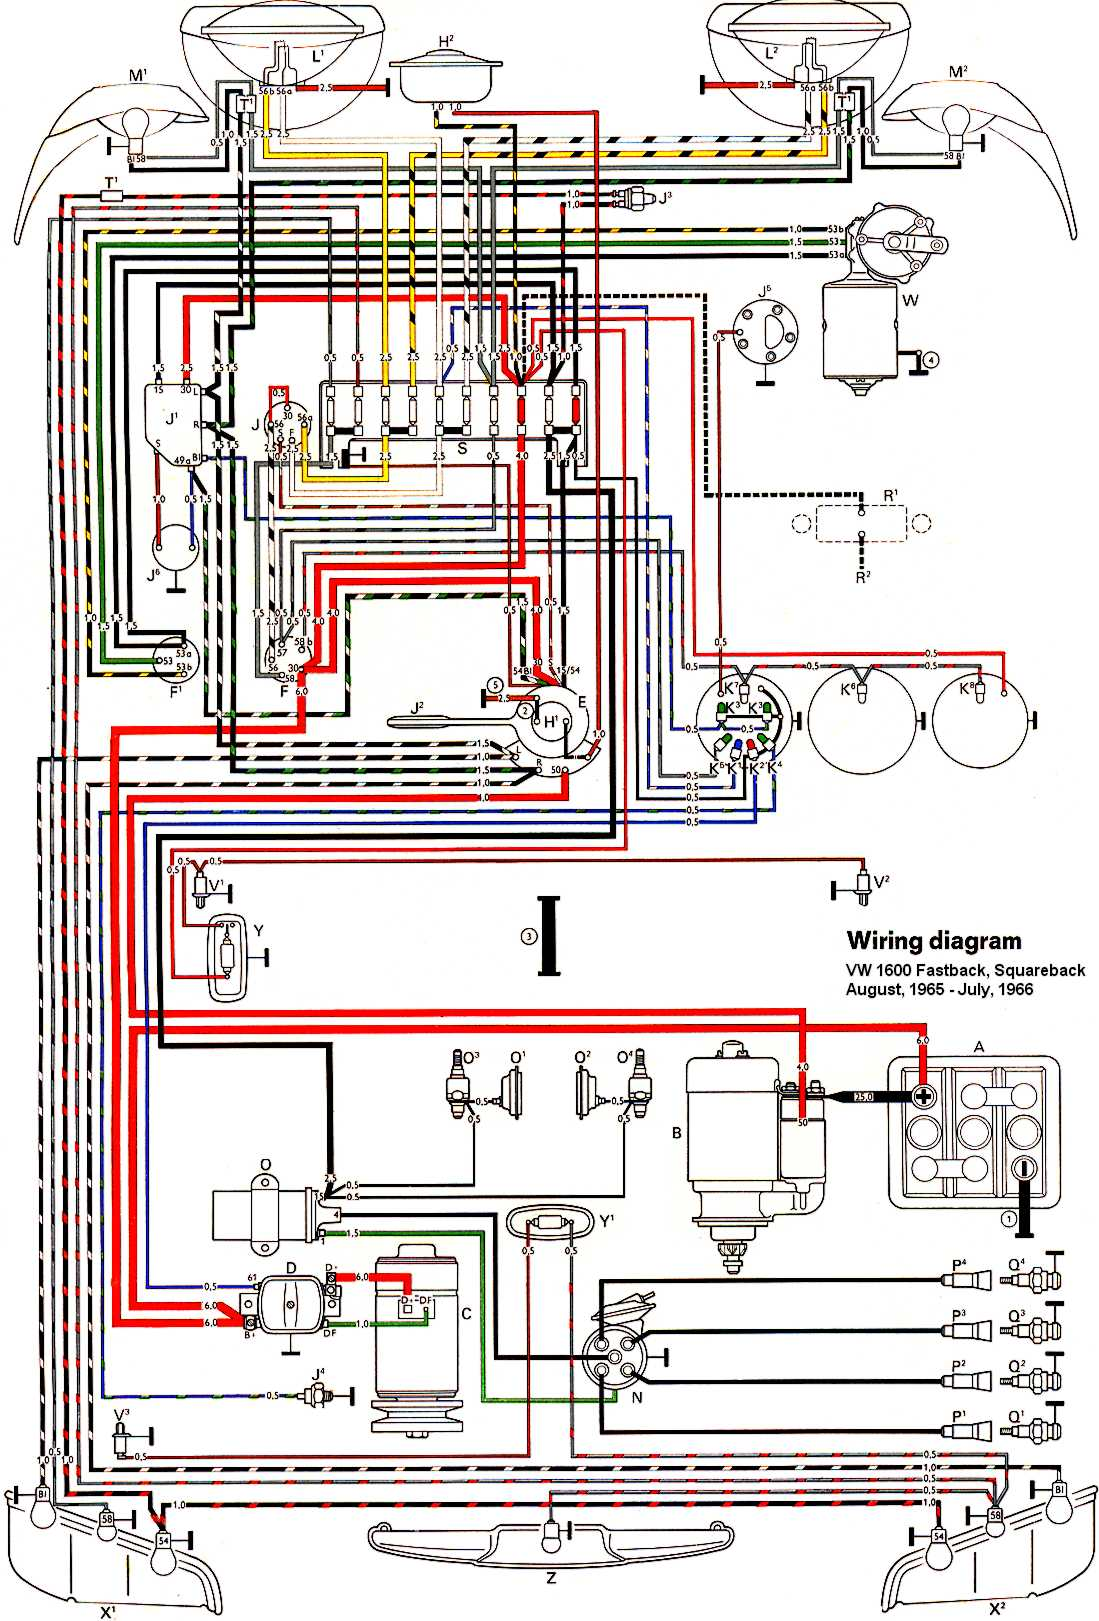 type3_1600_66 vw bus wiring diagram 1965 vw bus wiring diagram \u2022 wiring diagrams 1970 vw bug wiring diagram at readyjetset.co